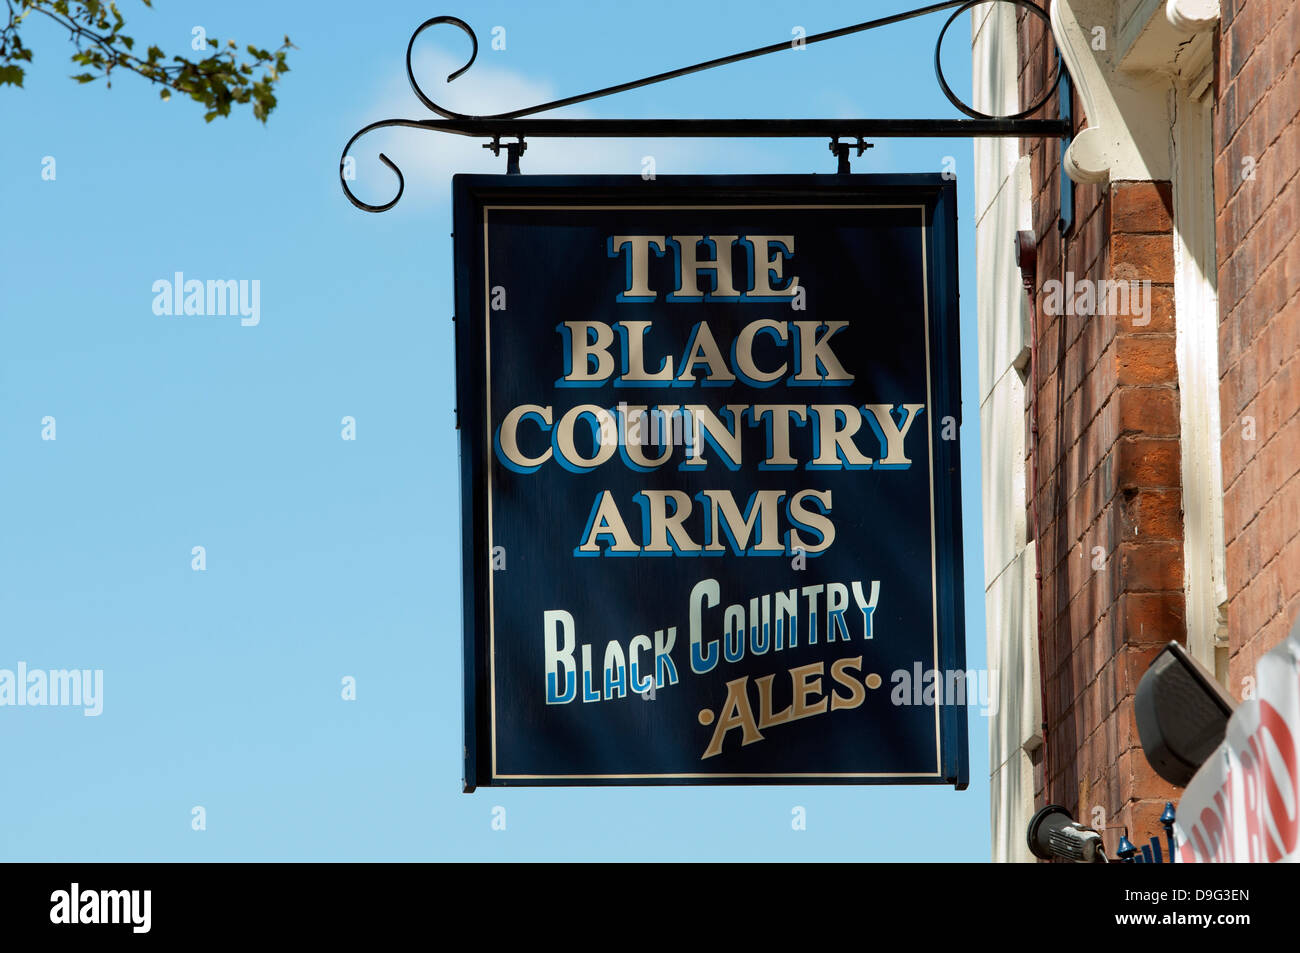 The Black Country Arms pub sign, Walsall, West Midlands, England, UK - Stock Image